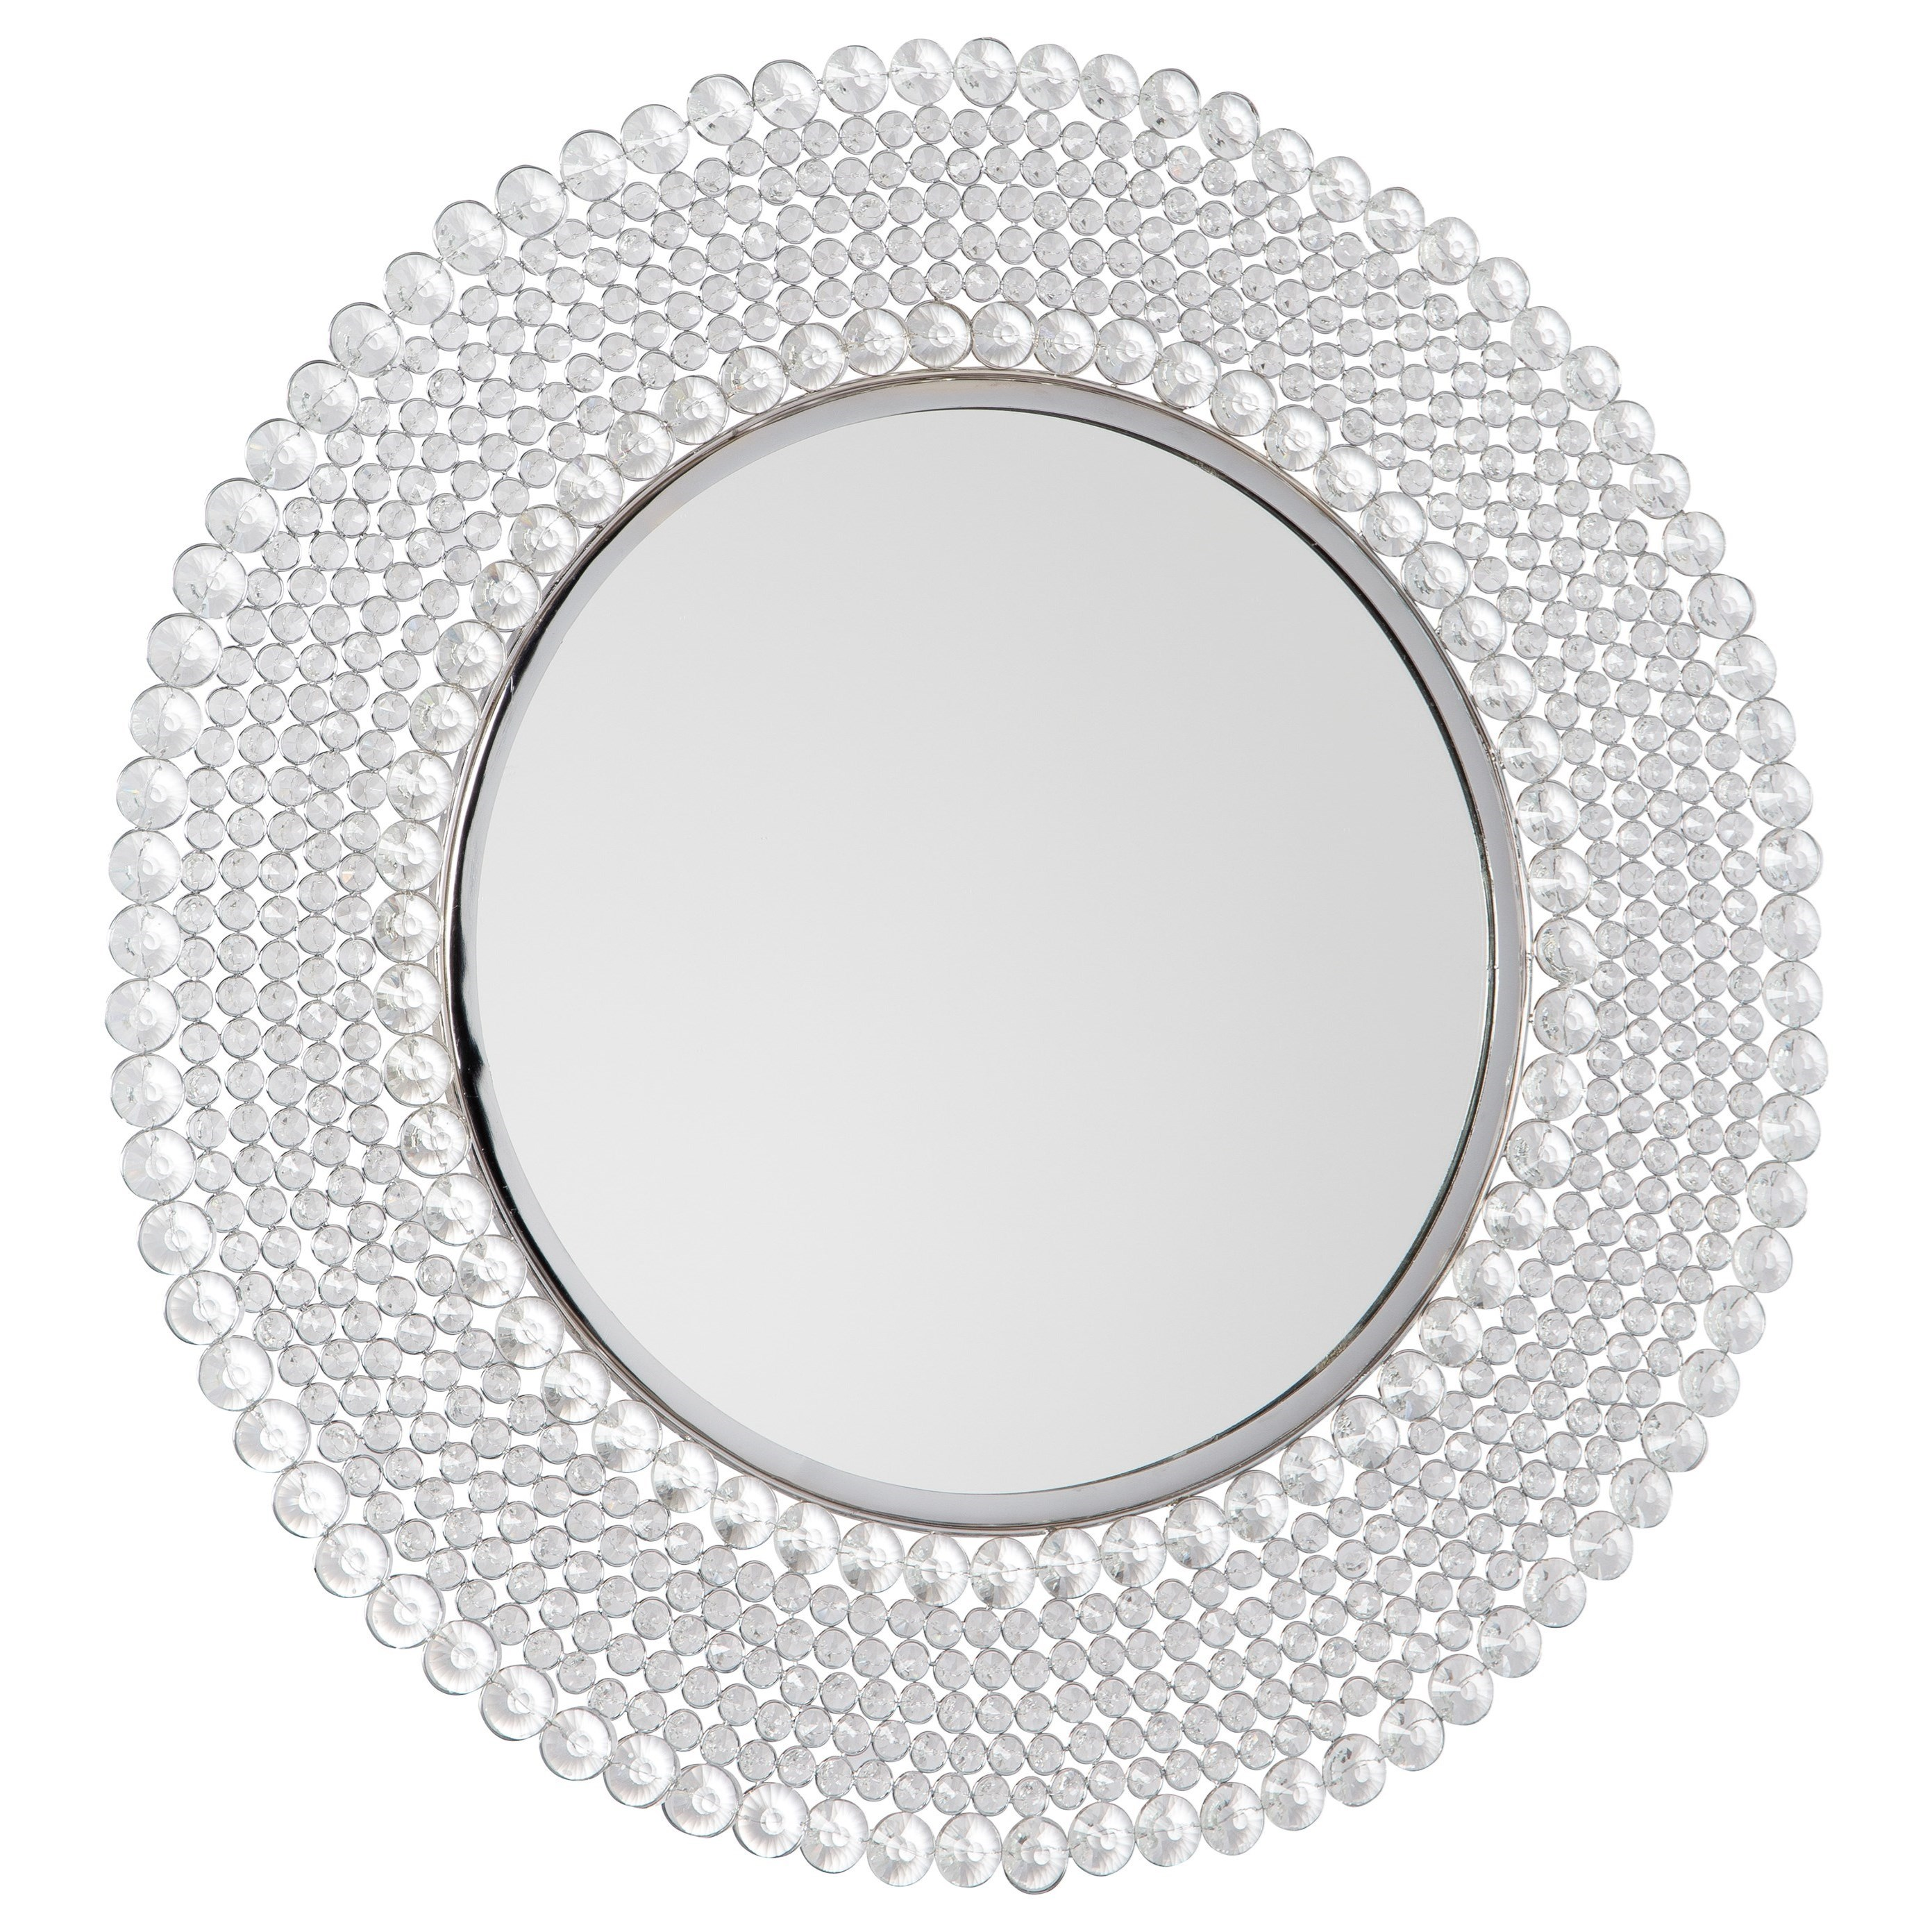 Accent Mirrors Marly Clear/Silver Finish Accent Mirror by Ashley (Signature Design) at Johnny Janosik